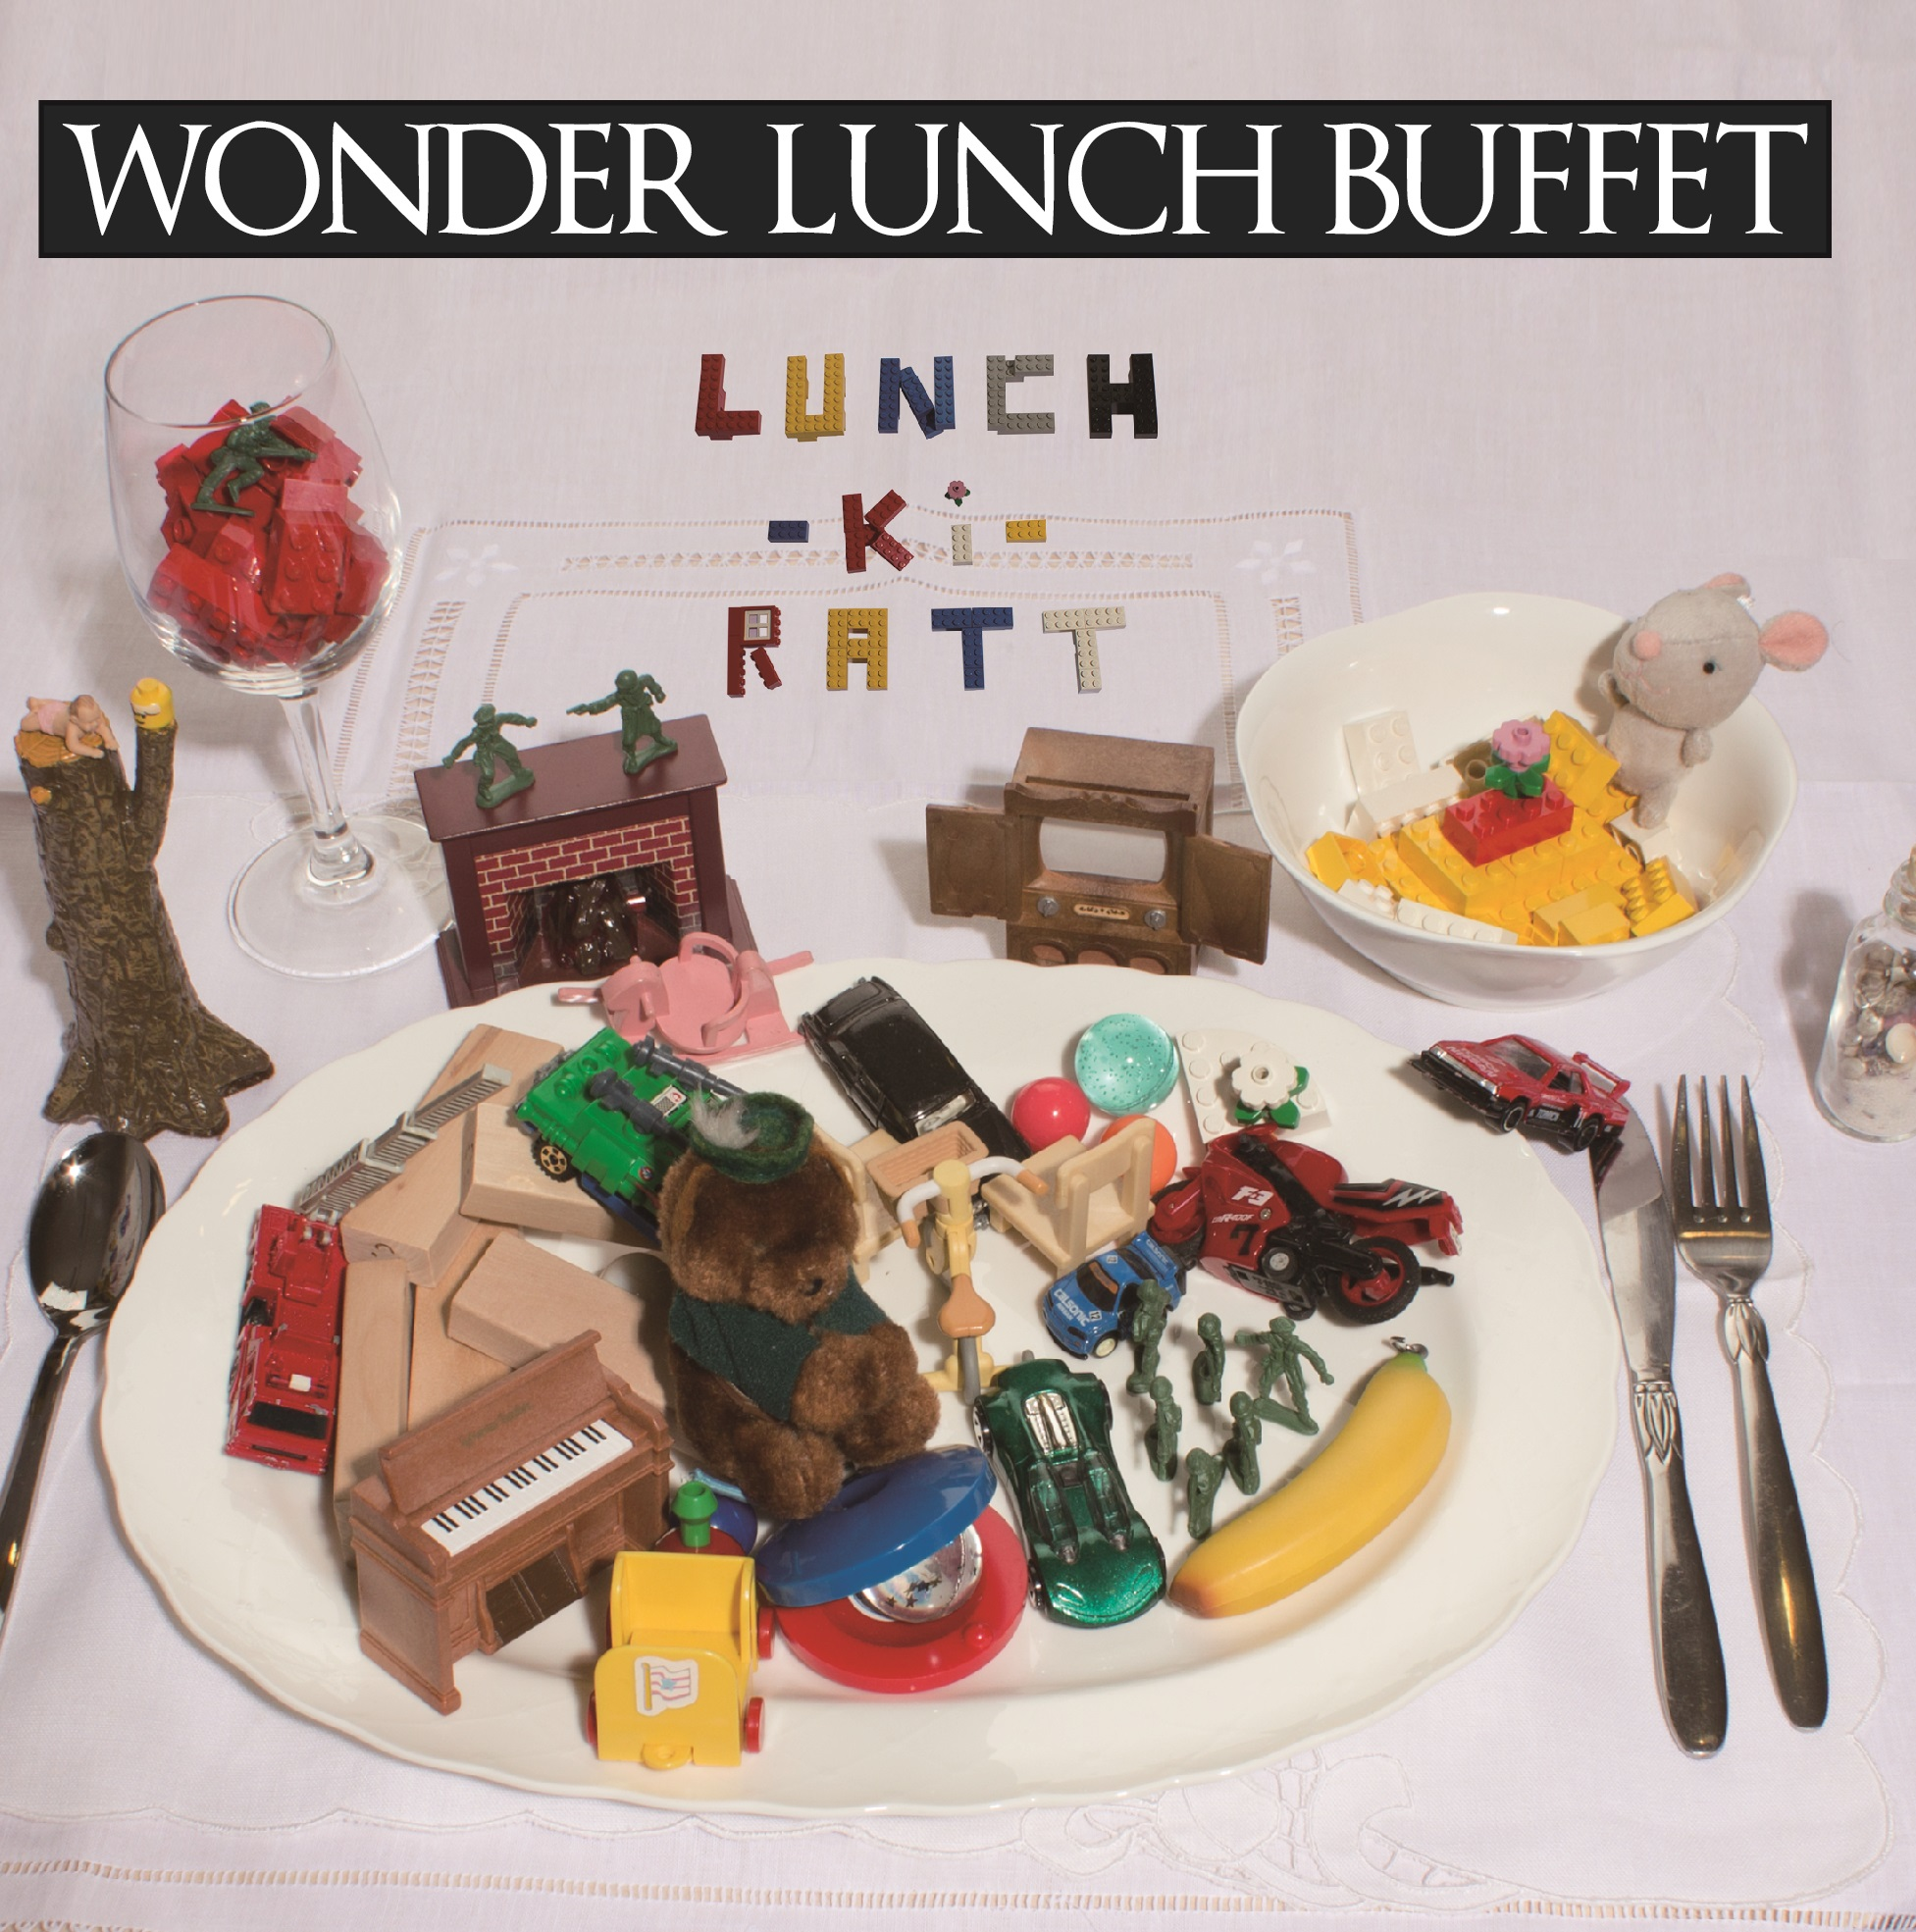 WONDER LUNCH BUFFET